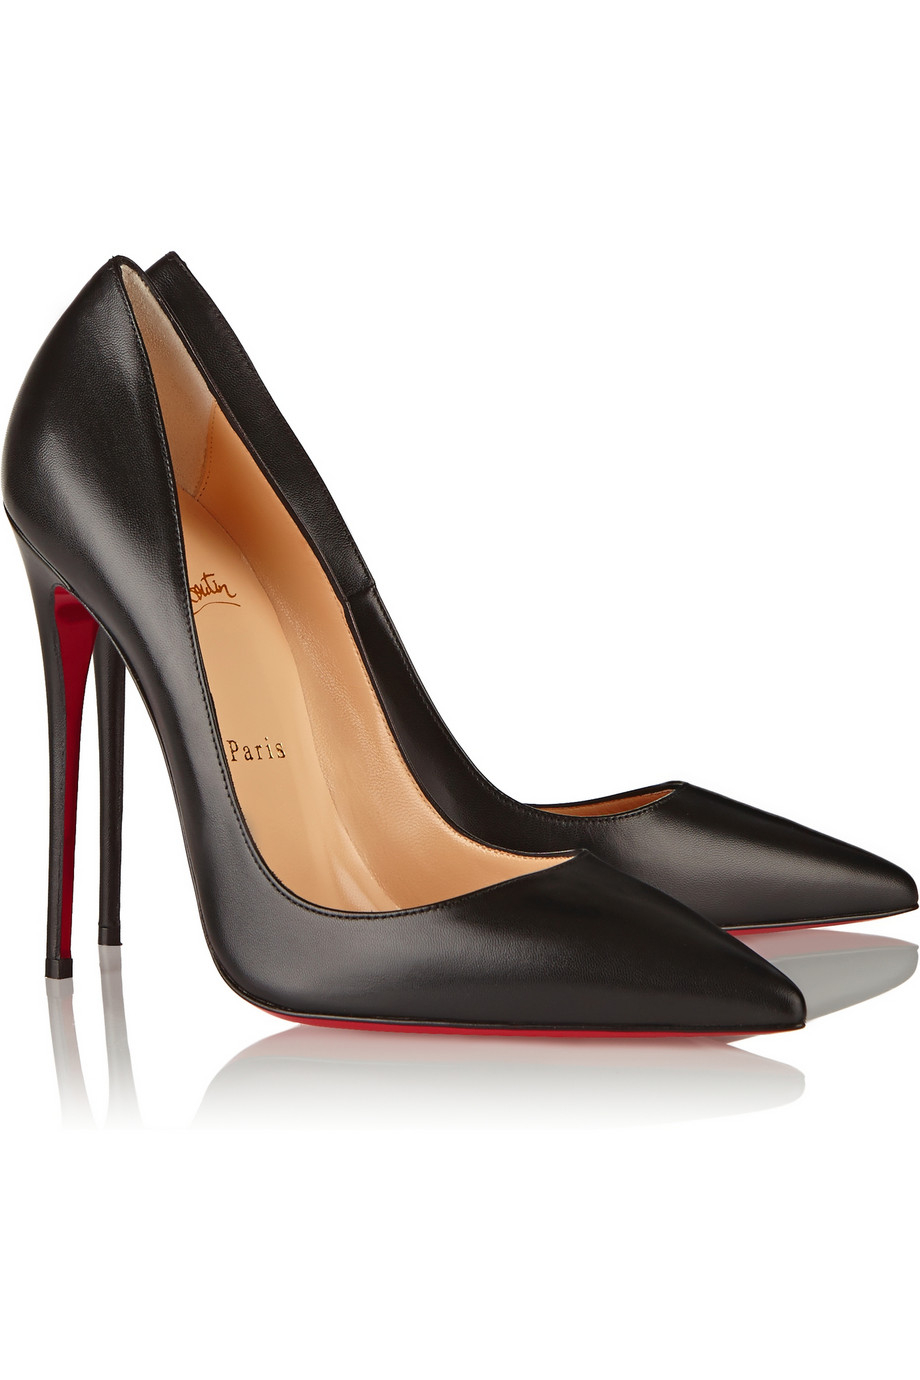 Red Bottom Shoes Christian Louboutin